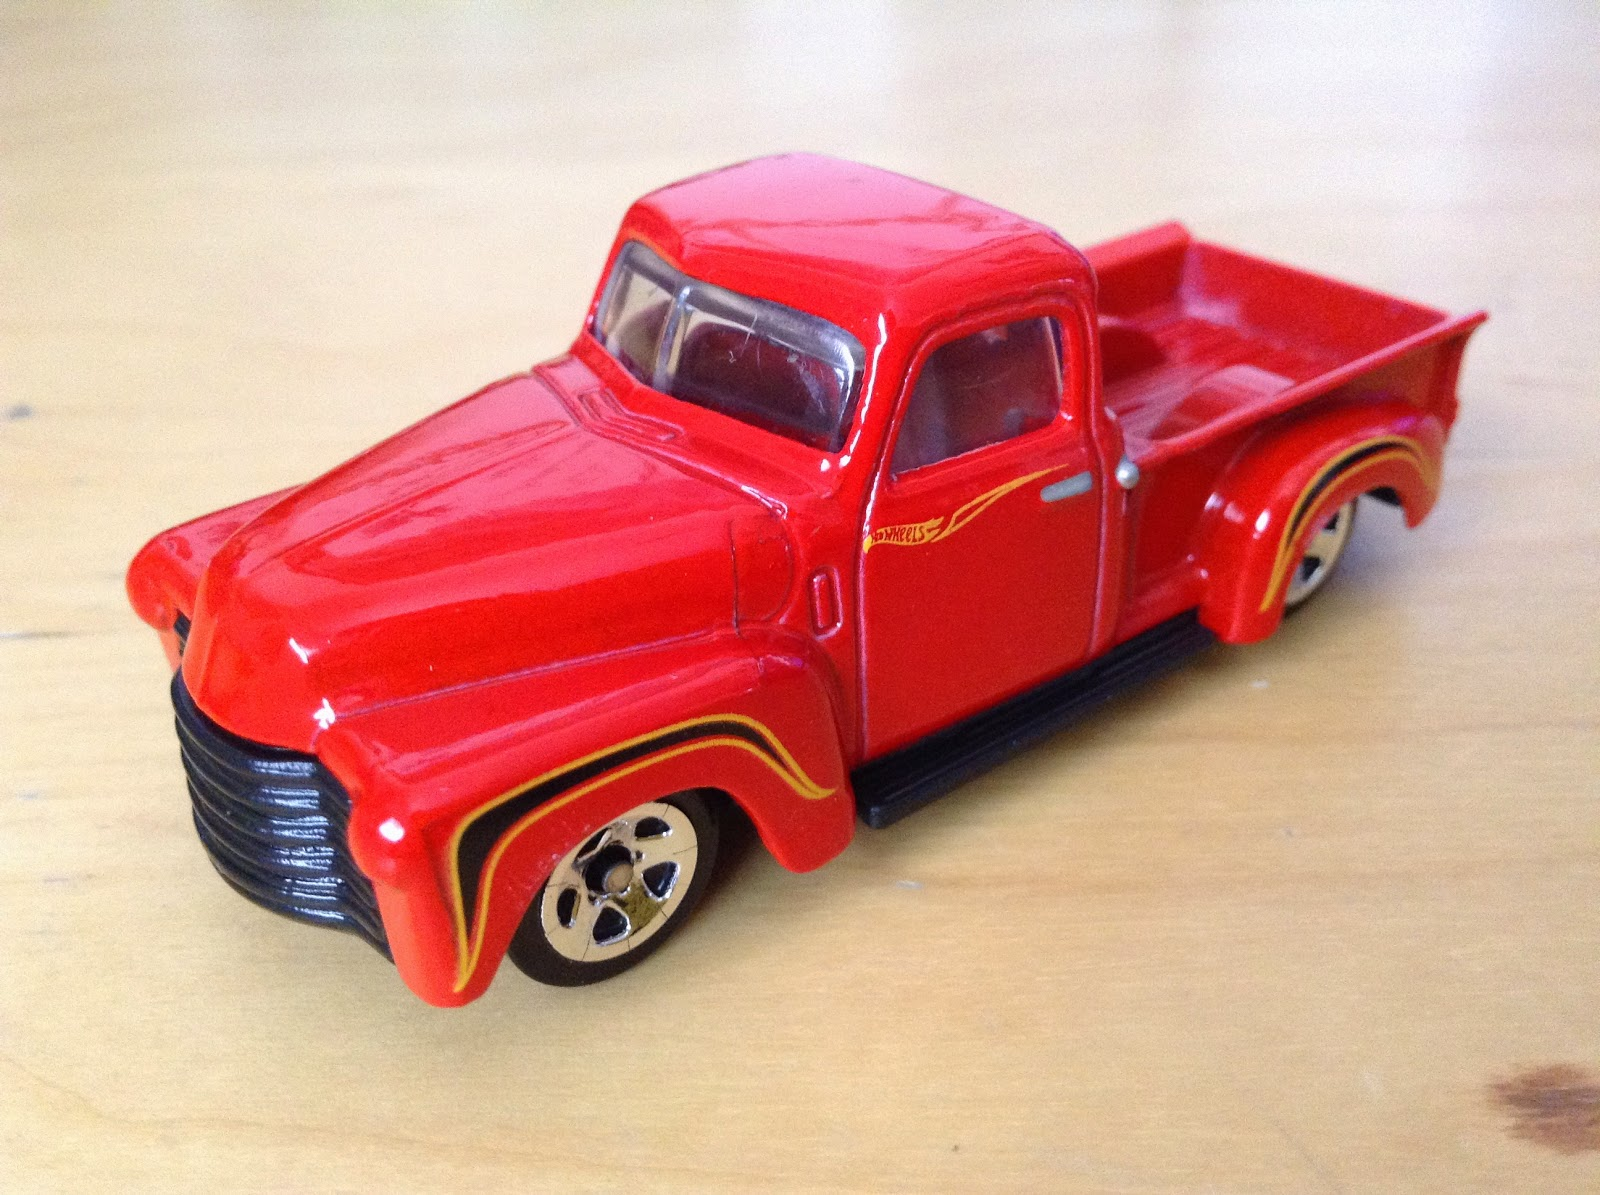 Julians Hot Wheels Blog 52 Chevy Pickup Truck 2015 Then And Now 1968 50th Anniversary